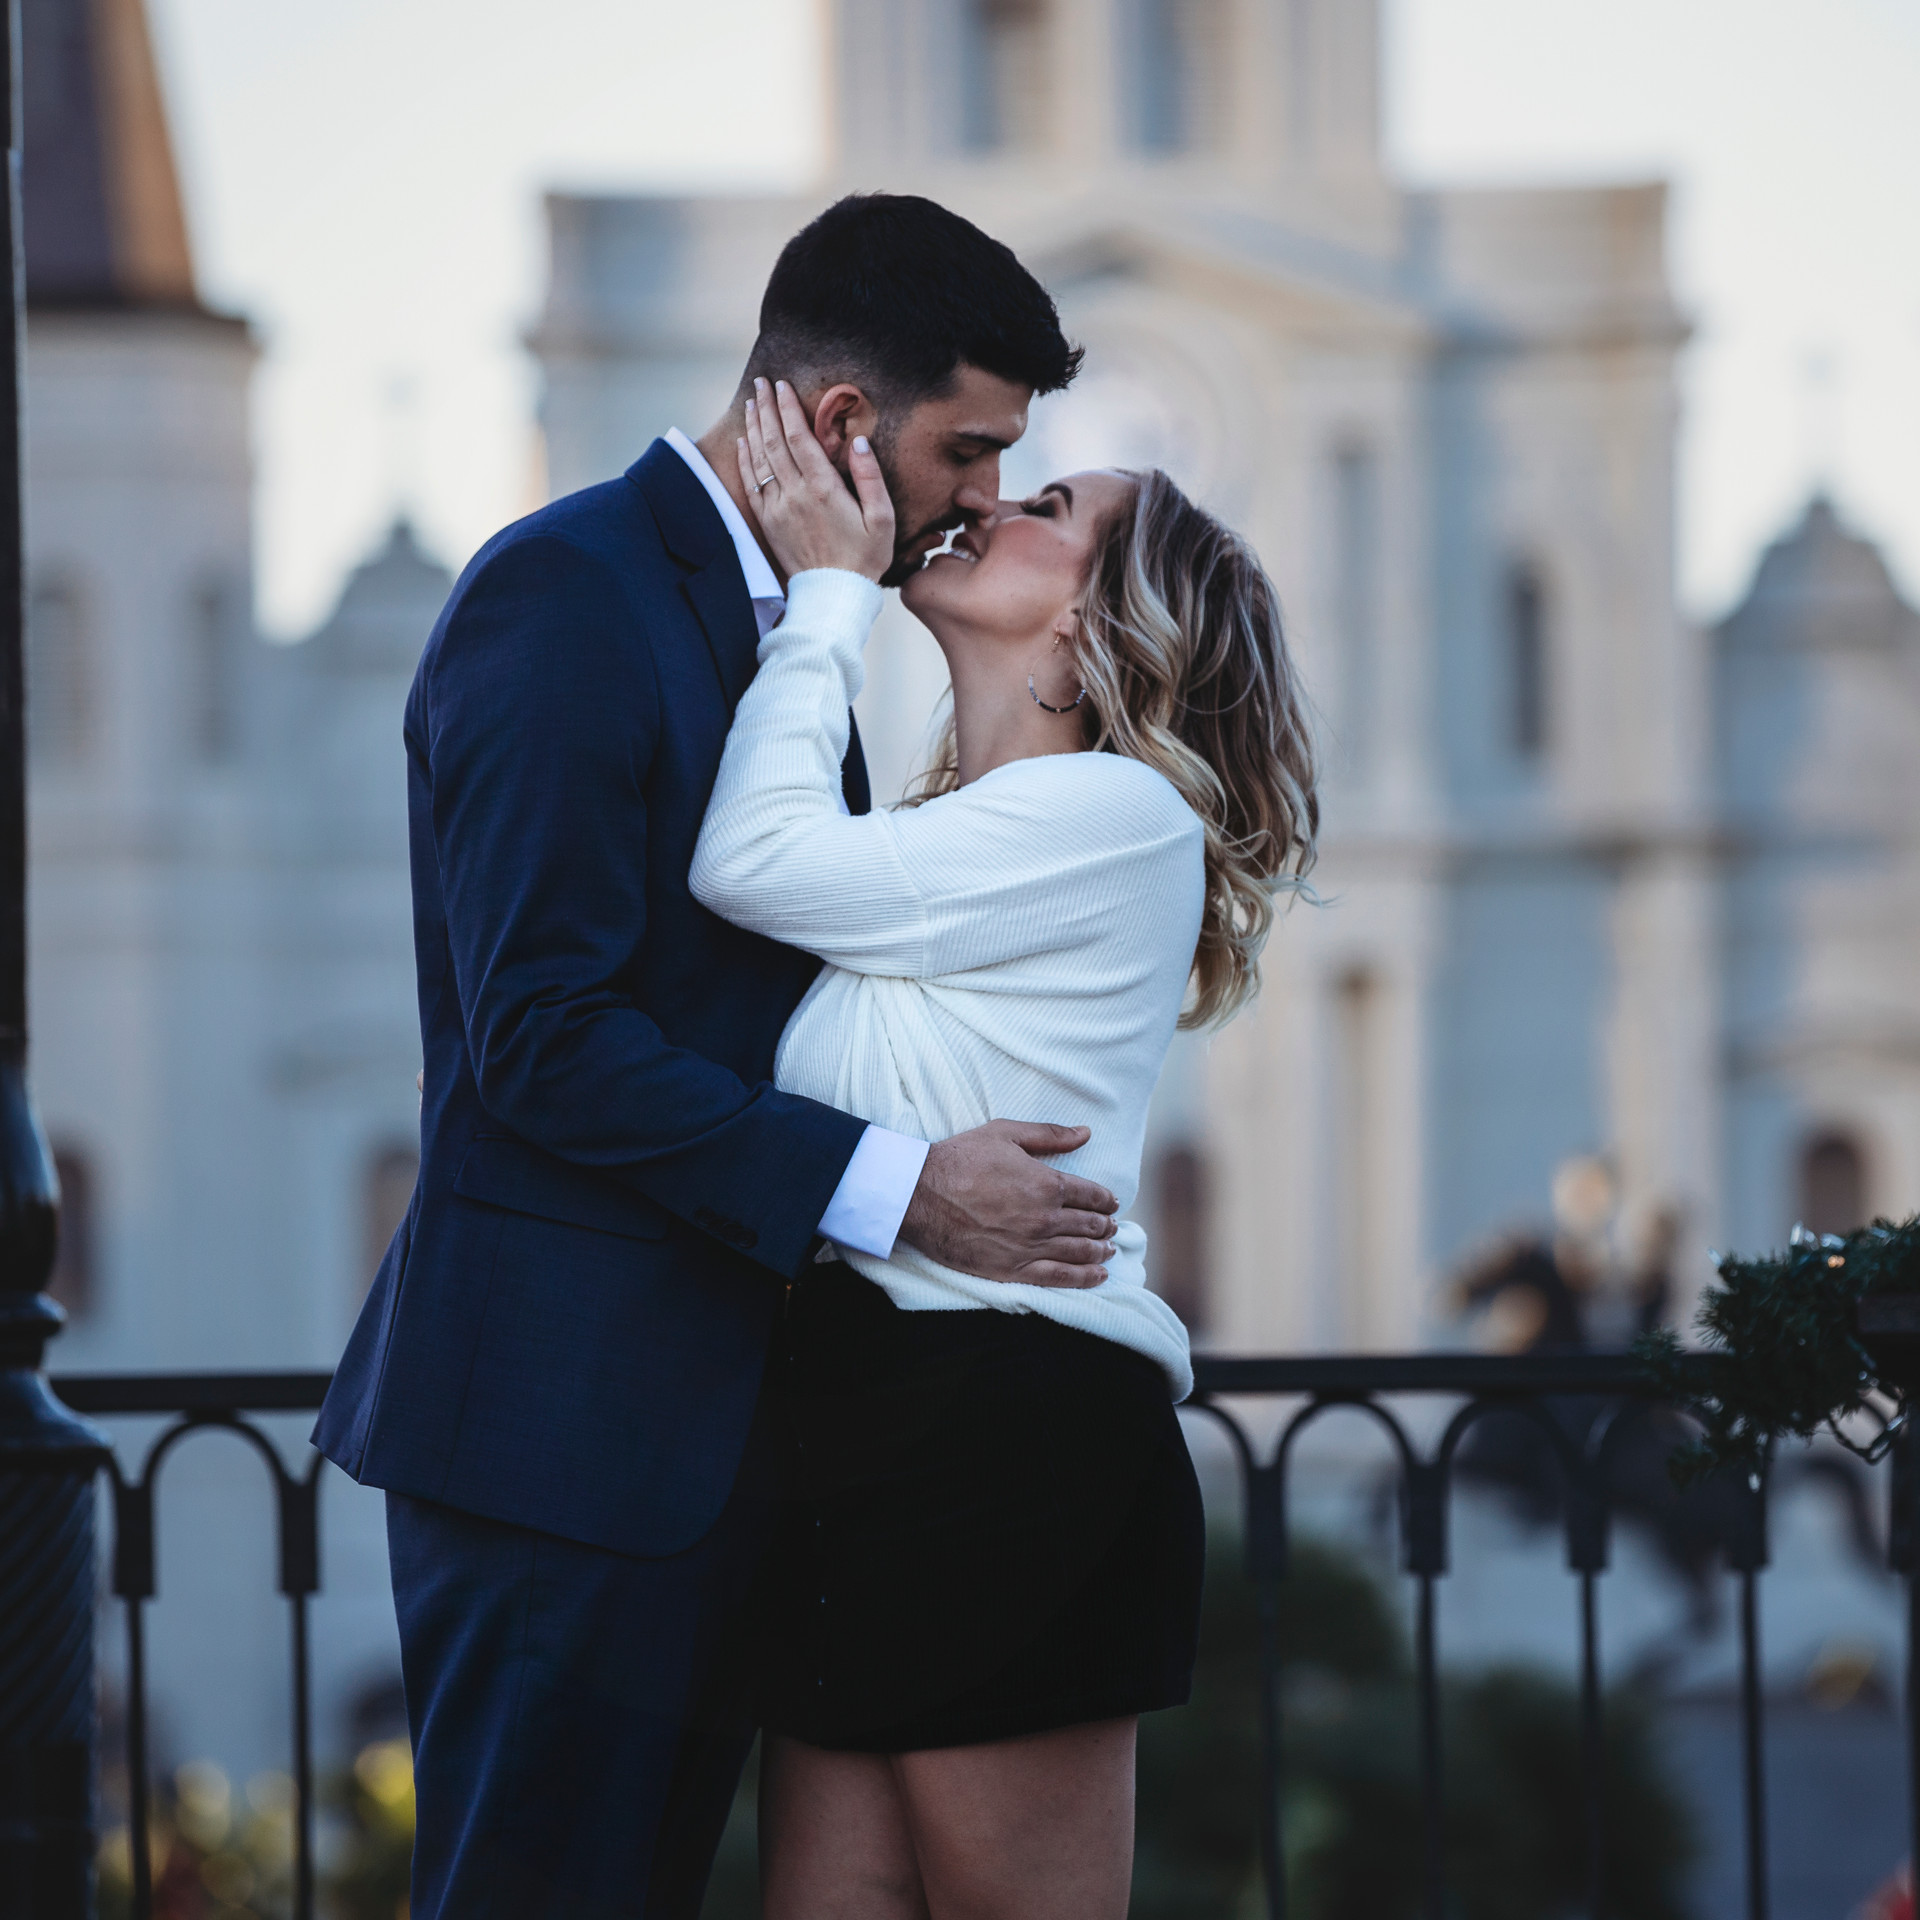 Couples Photo - Engagement Photographer - couples pictures - french quarter photo shoot